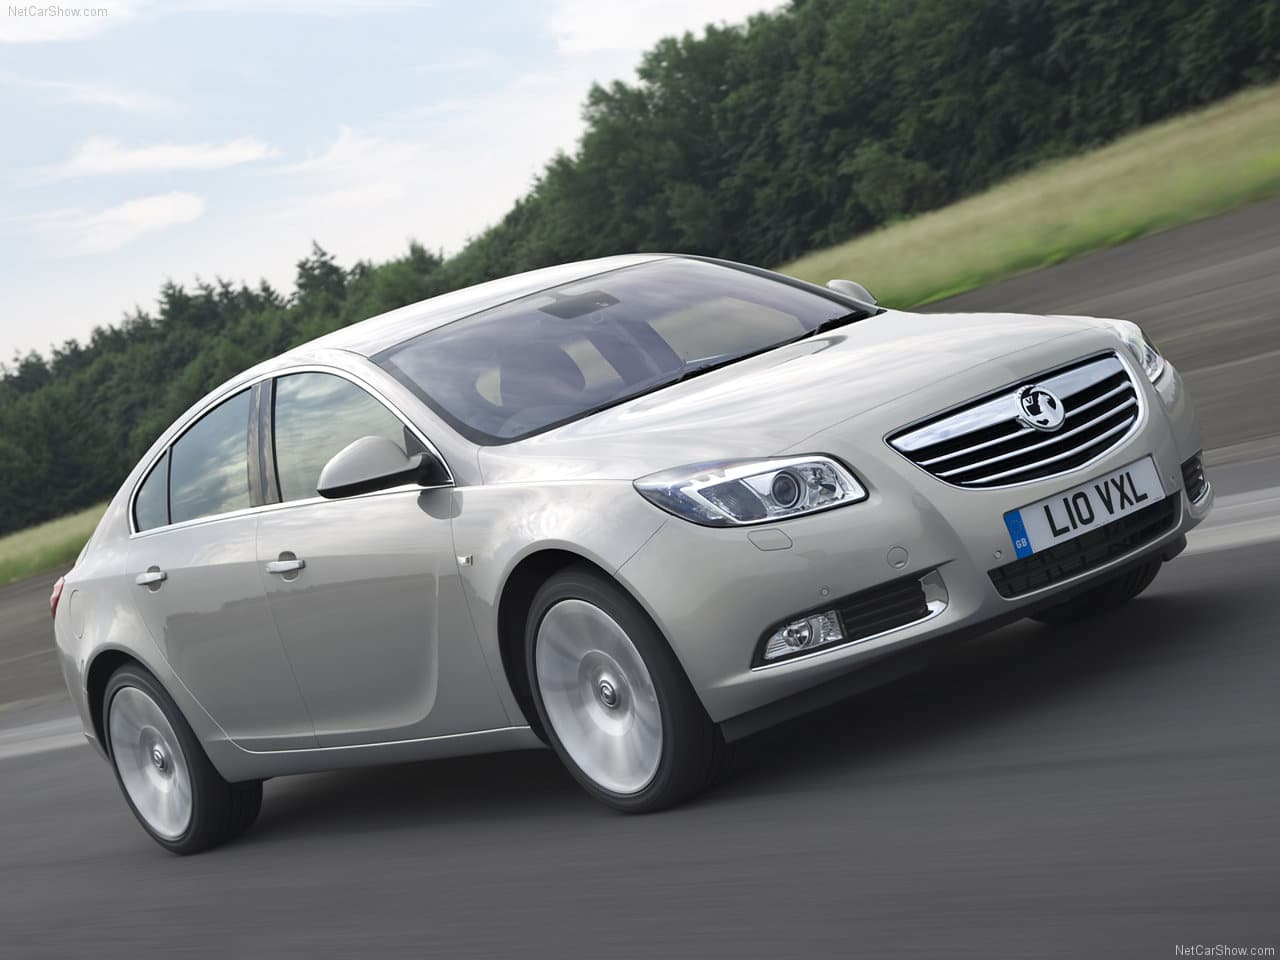 Vauxhall Insignia, Vauxhall, Insignia, SRi, Elite, NAV, Luton, saloon car, hatchback, company car, rep car, boring car, motoring, automotive, car, cars, diesel, petrol, autotrader, ebay, ebay motors, classic car, retro car, cheap car, bargain car